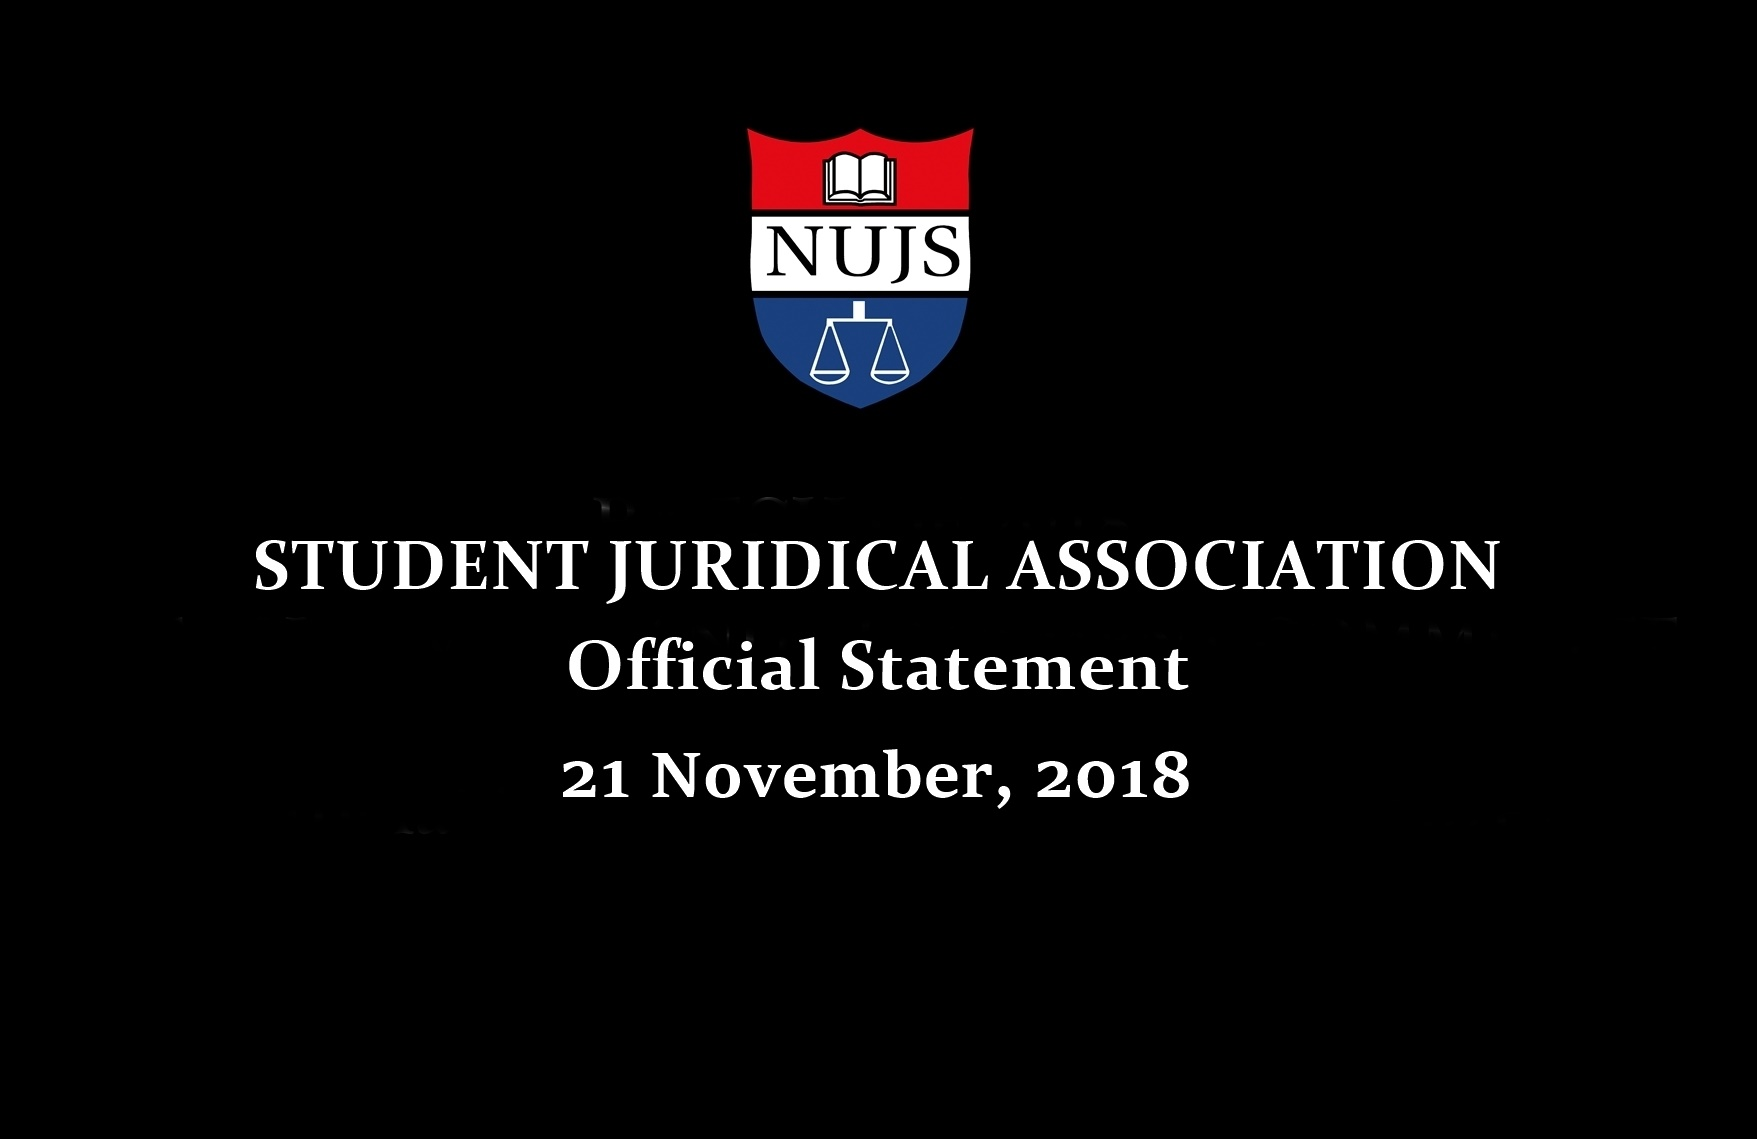 NUJS Amendment Domicile Reservation